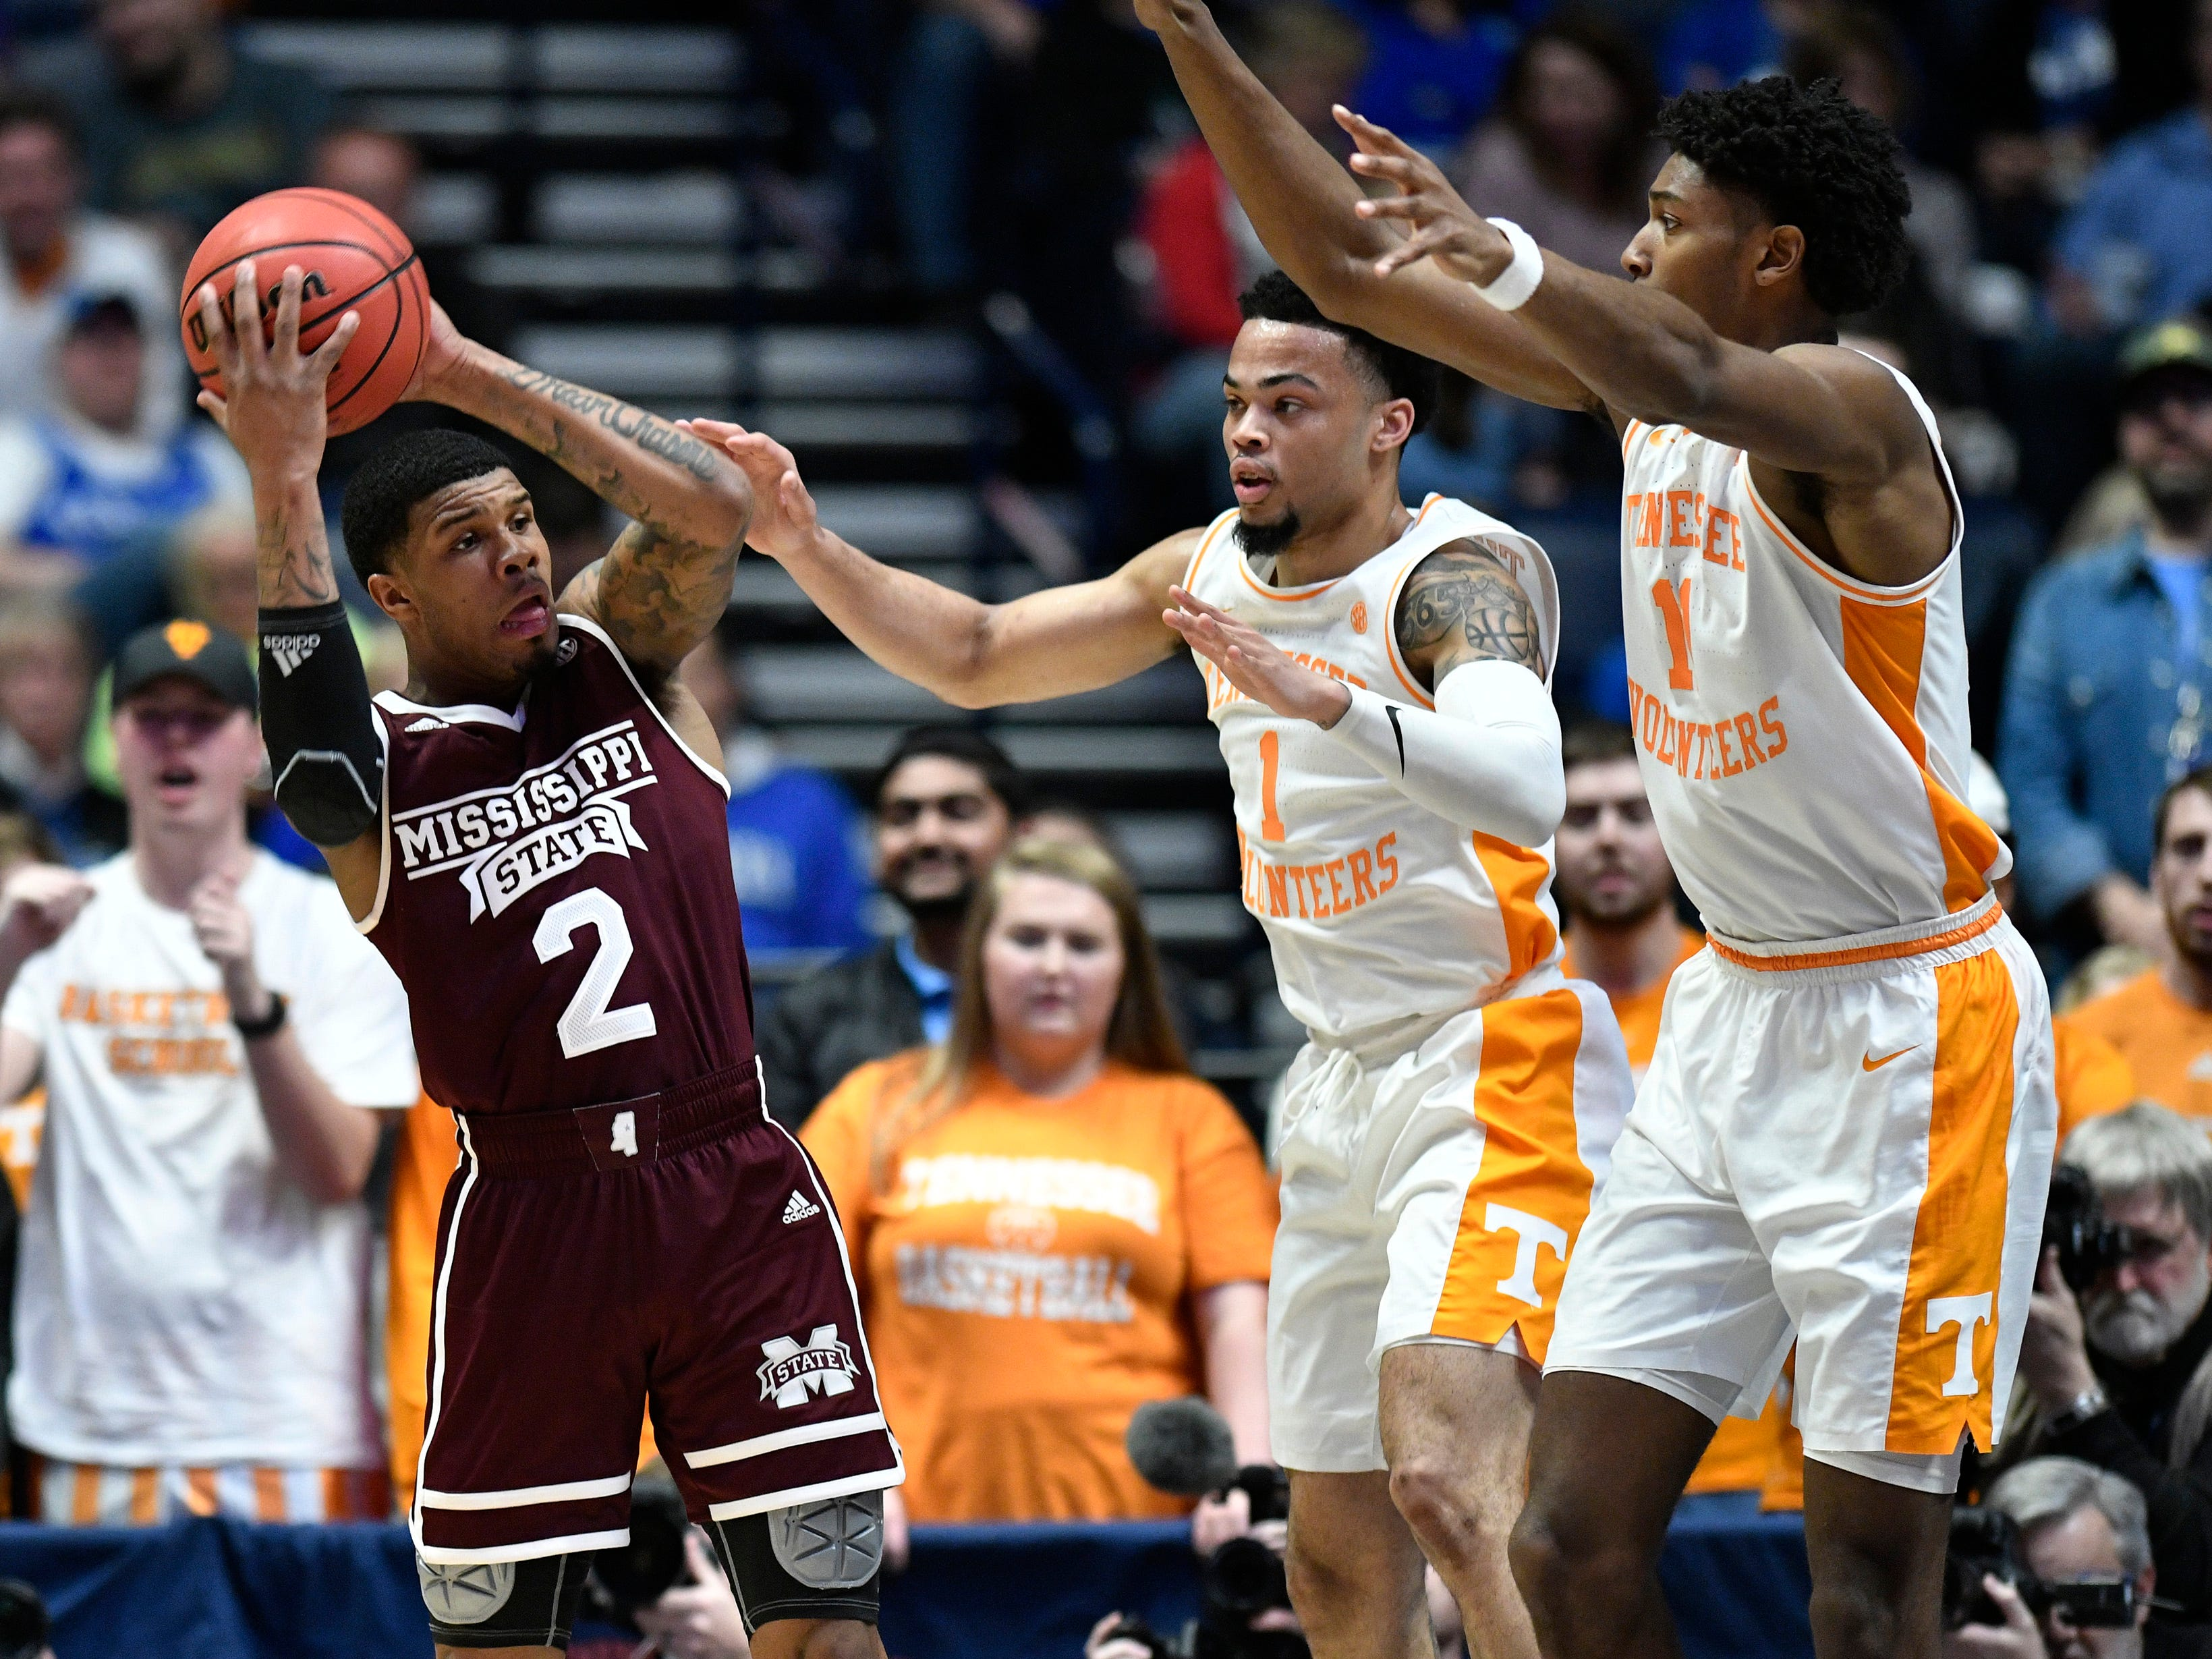 Mississippi State guard Lamar Peters (2) tries to move defended by Tennessee guard Lamonte Turner (1) and forward Kyle Alexander (11) during the first half of the SEC Men's Basketball Tournament game at Bridgestone Arena in Nashville, Tenn., Friday, March 15, 2019.